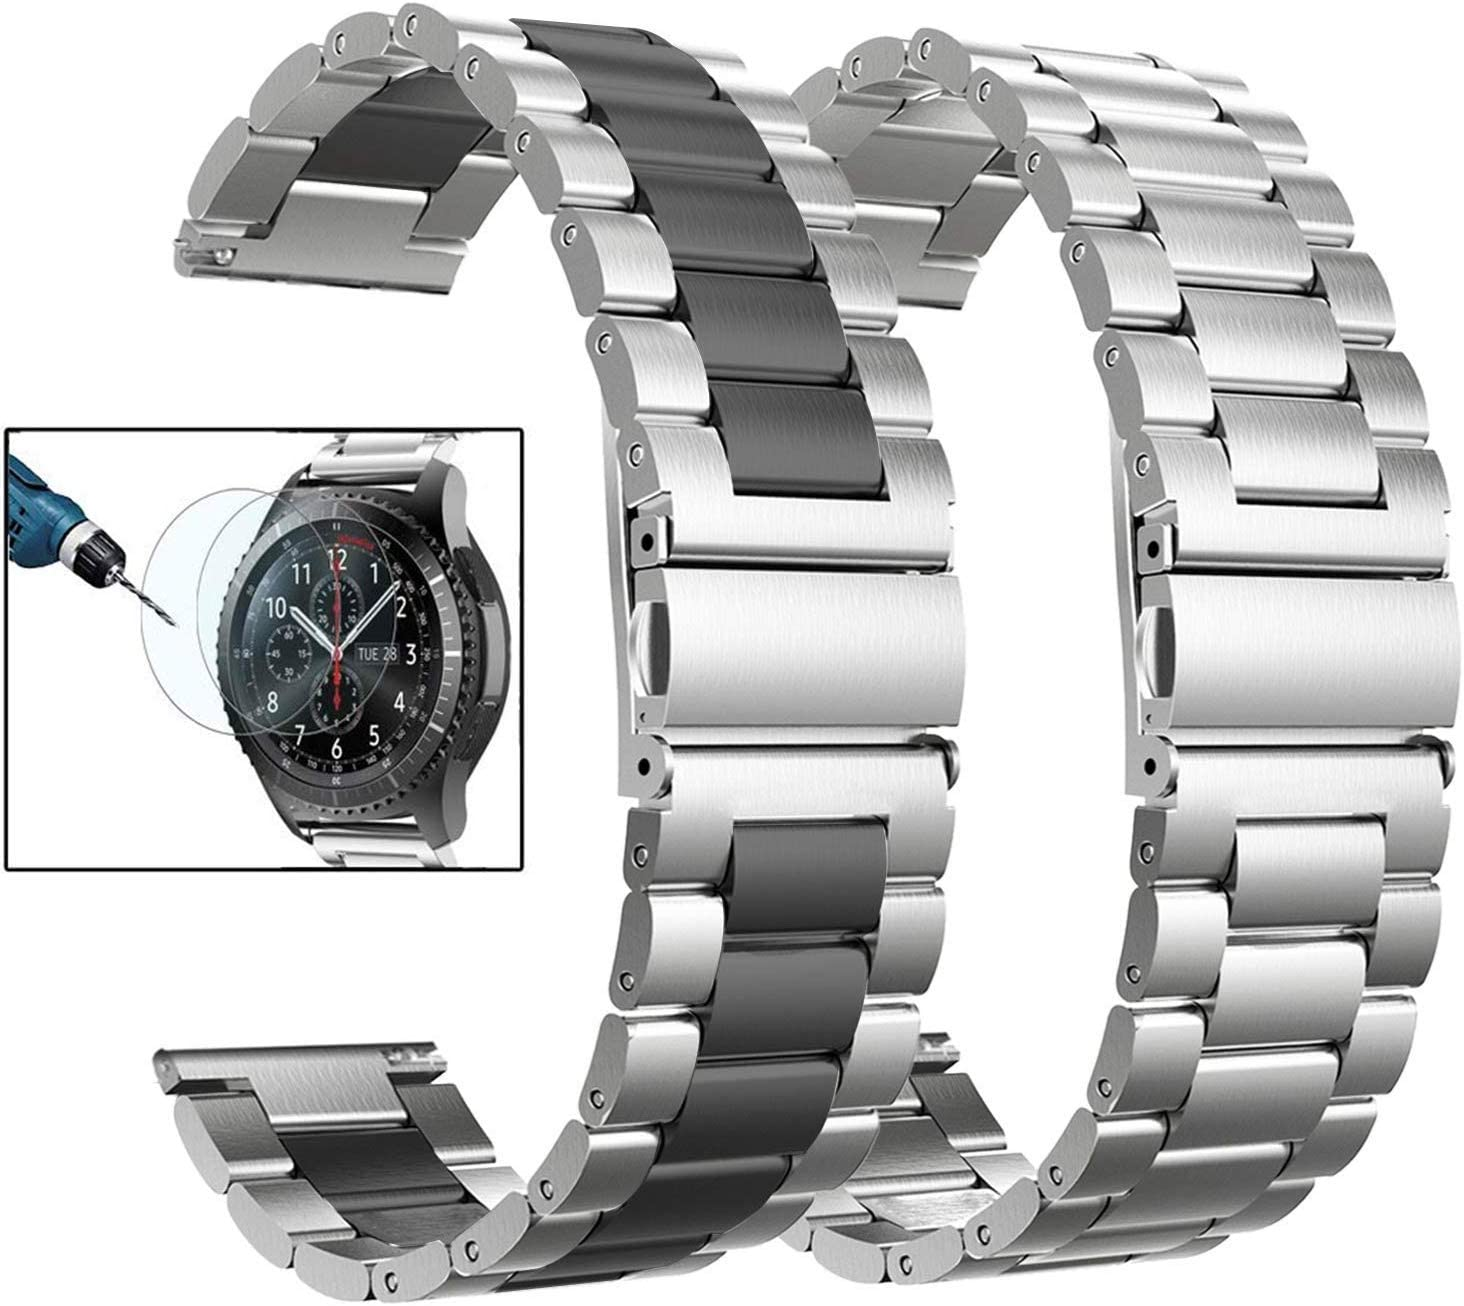 Valkit Compatible Galaxy Watch 46mm/Galaxy Watch 3 45mm Bands, 2 Pack 22mm Stainless Steel Solid Metal Wrist Band Business Strap + Screen Protector for Gear S3 Frontier/Classic, Sliver/Black+Sliver